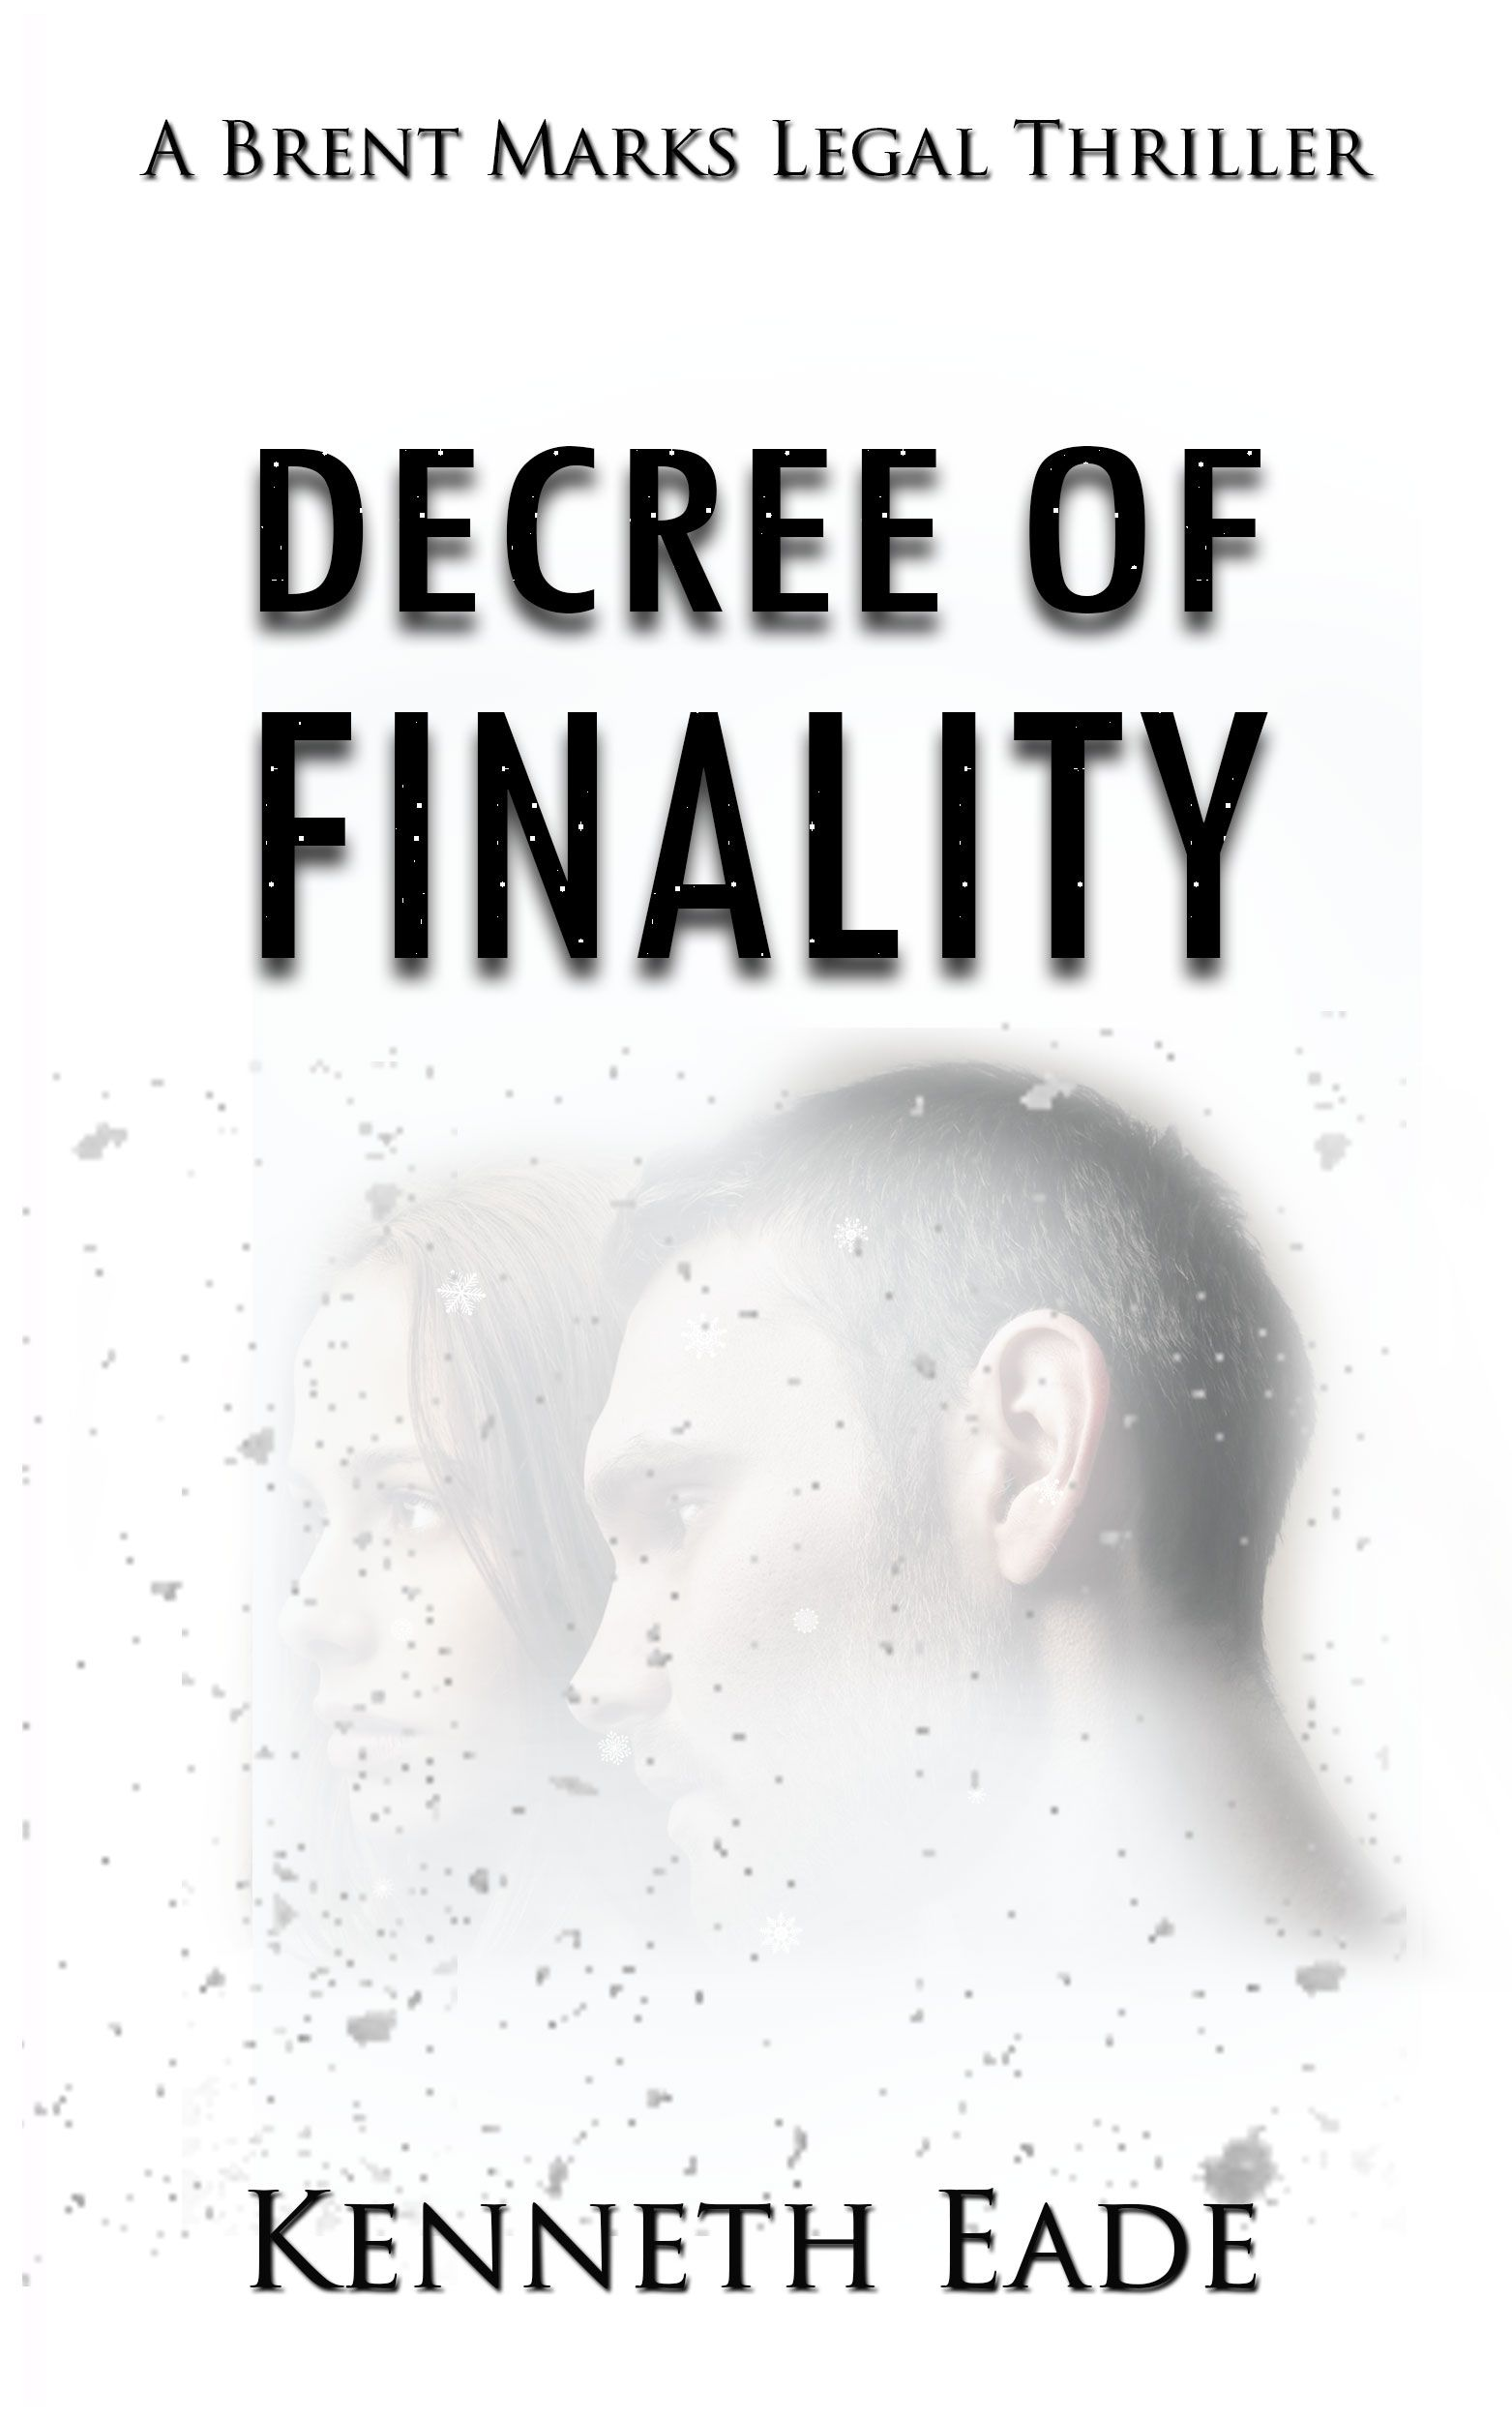 """AuthorKenneth Eade, whom critics hail as """"one of the strongest thriller writers on our scene""""announced today the launch of the newest legal thriller in his """"Brent Marks Legal Thrillers"""" faction series, """"Decree of Finality.""""  The novel isabout a lawyer who reluctantly takes on a divorce case only to find it turn into a murder mystery. takes a Freedom of Informationcase for a journalist. """"I usually pick an important subject to wrap a story around. This time, I thought that the…"""